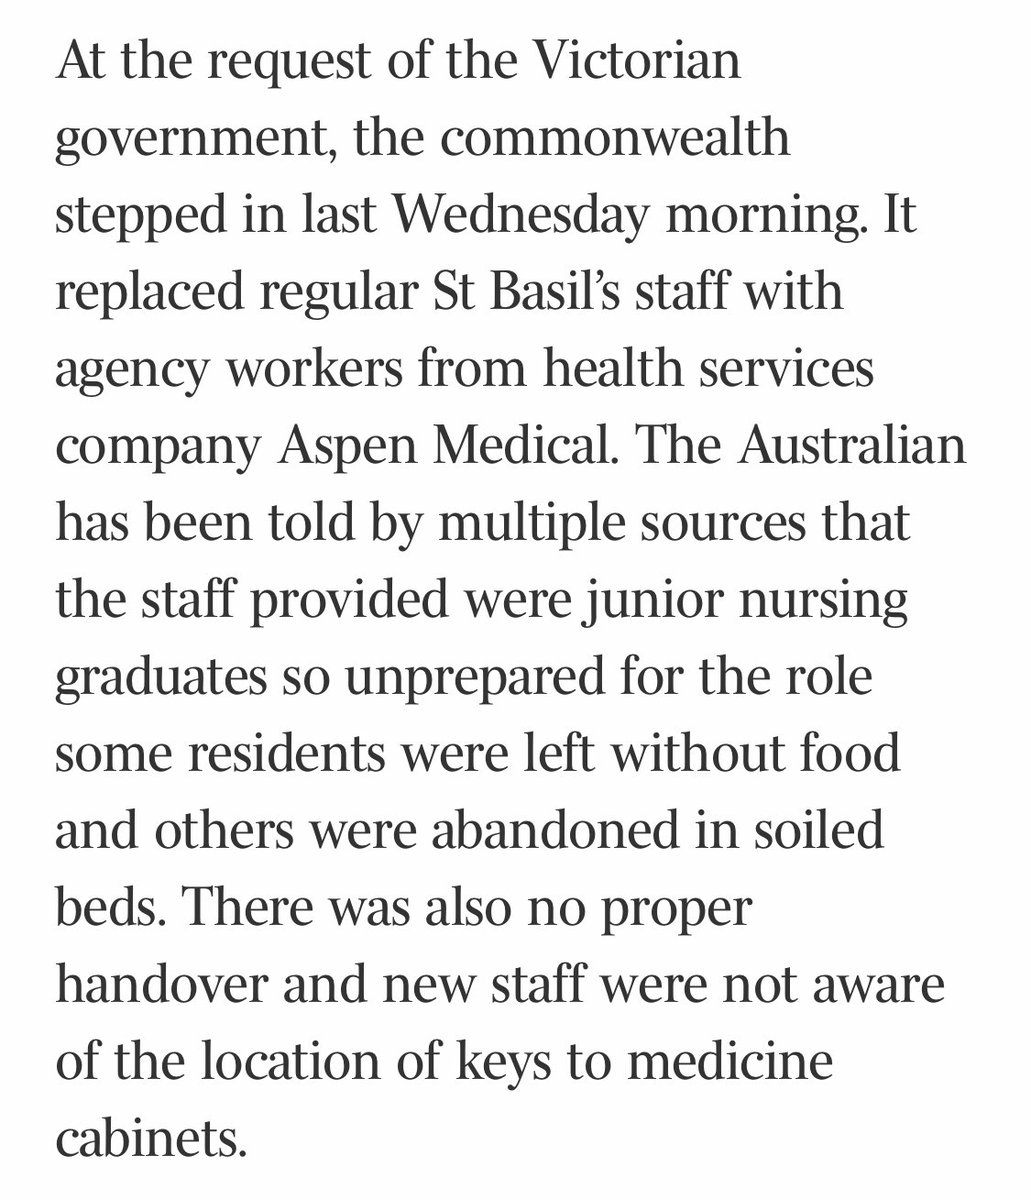 The Morrison government's handling of Victoria's escalating aged-care COVID-19 crisis is creating distress for residents and their families, leaving nursing home providers confused and making carers feel unsafe. @australian theaustralian.com.au/nation/aged-an…